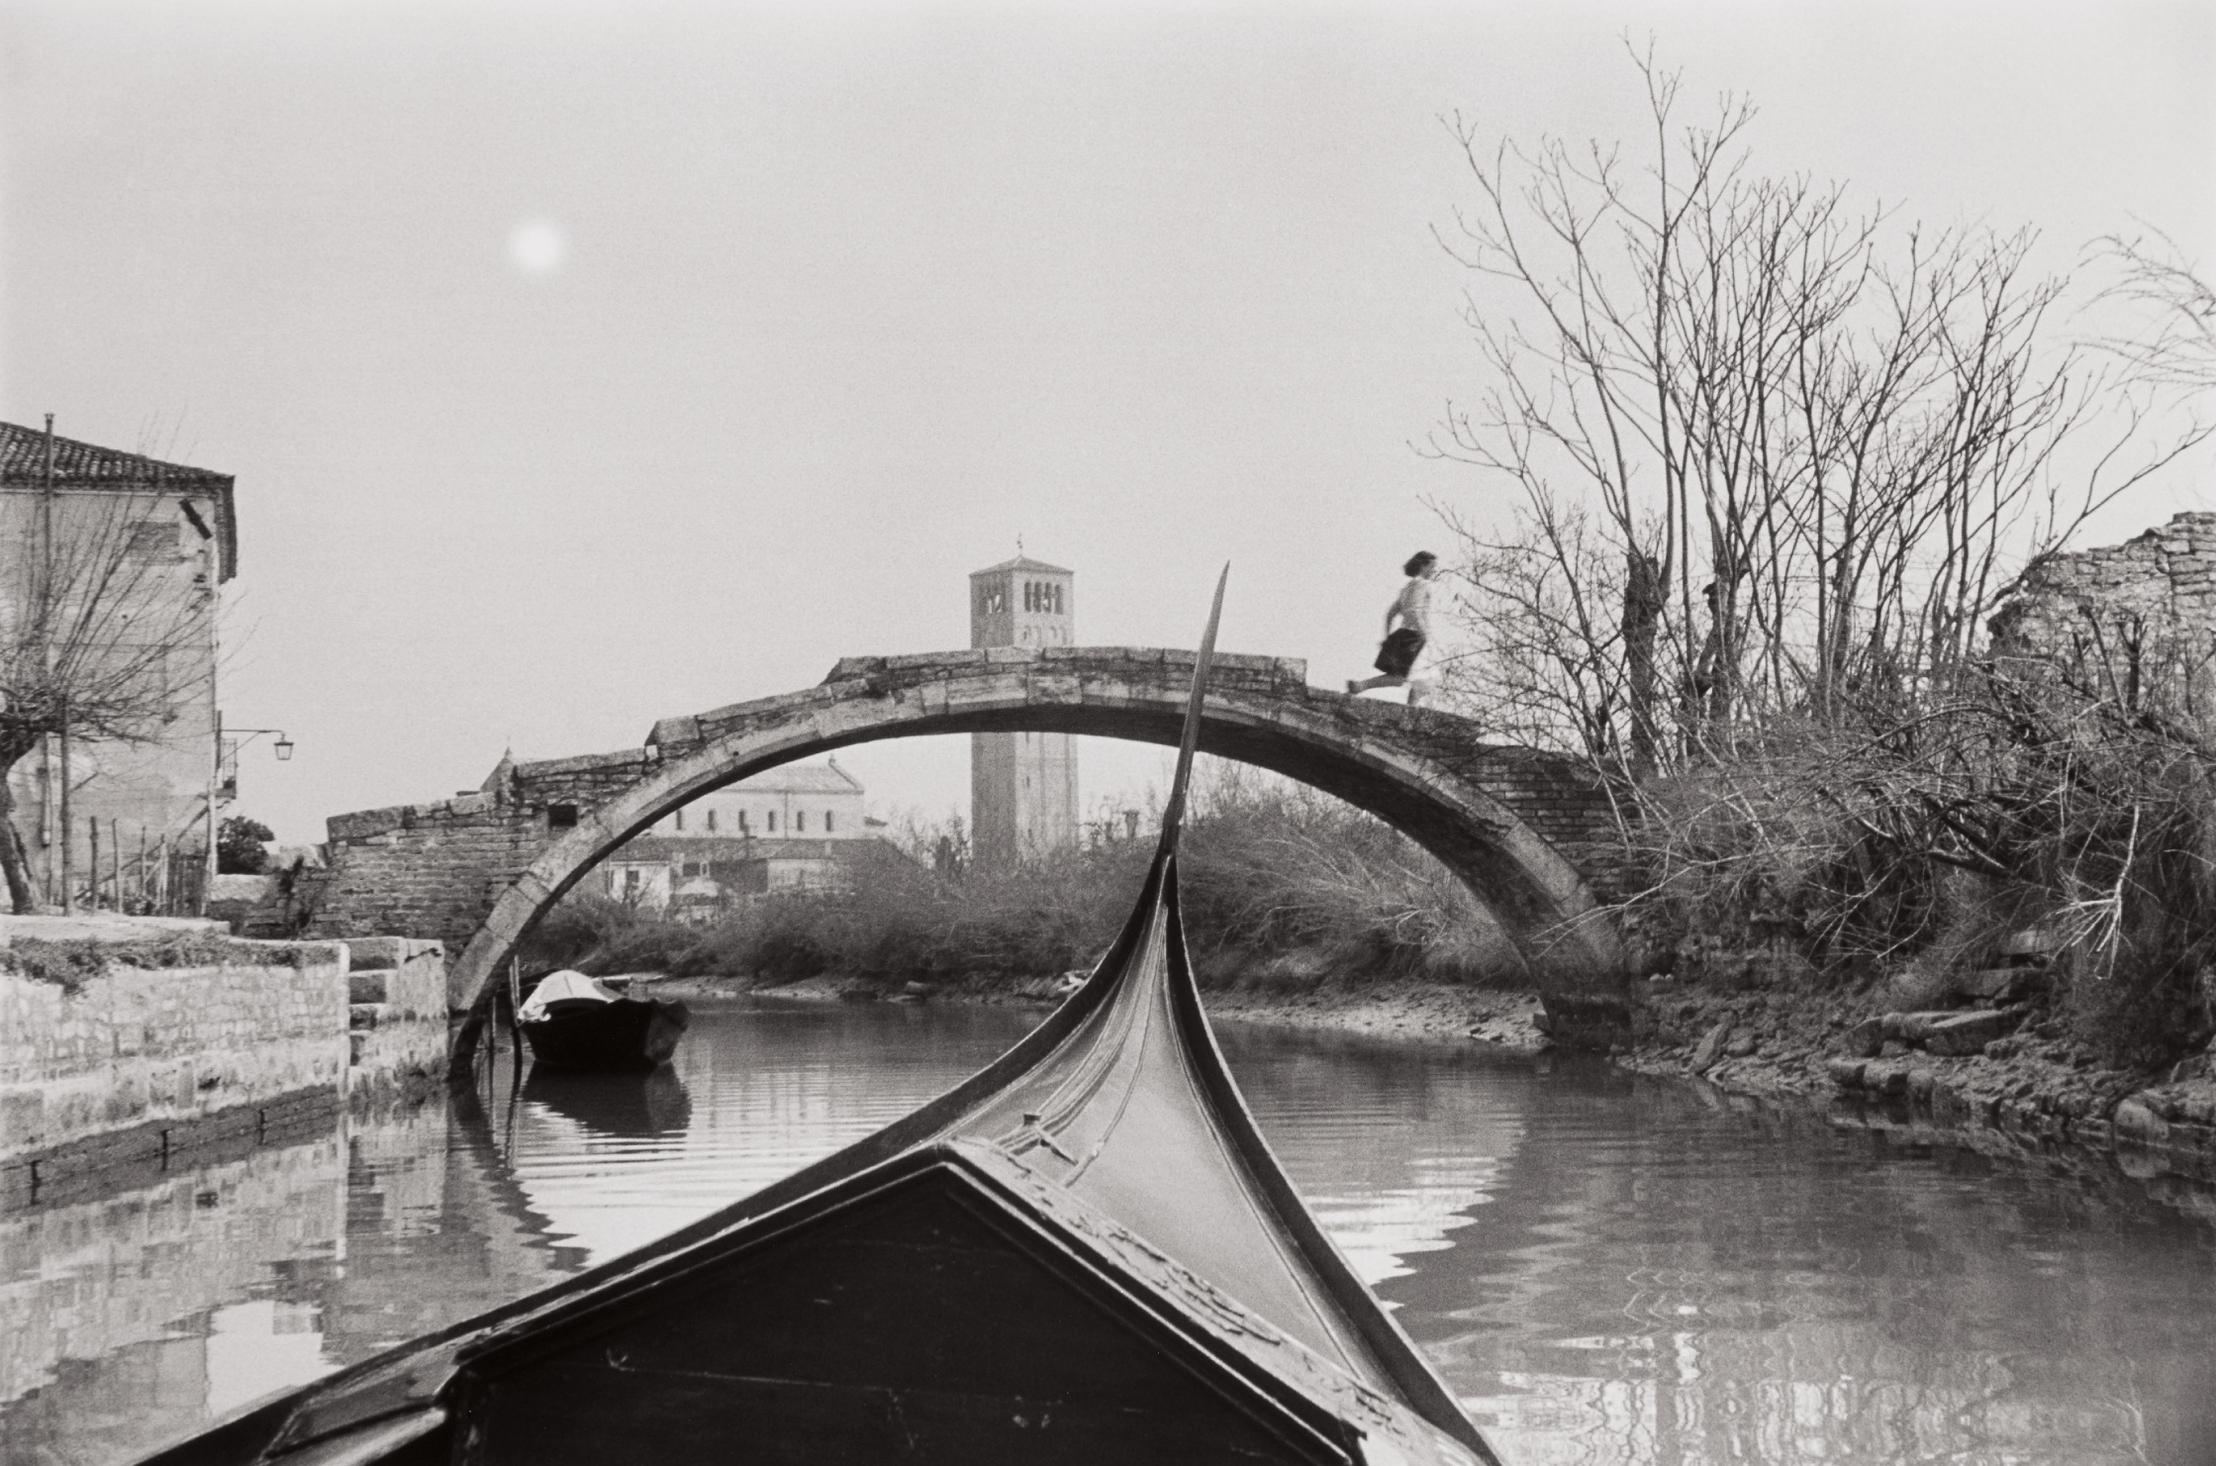 Henri Cartier-Bresson-Torcello In The Venetian Lagoon, Italy-1953